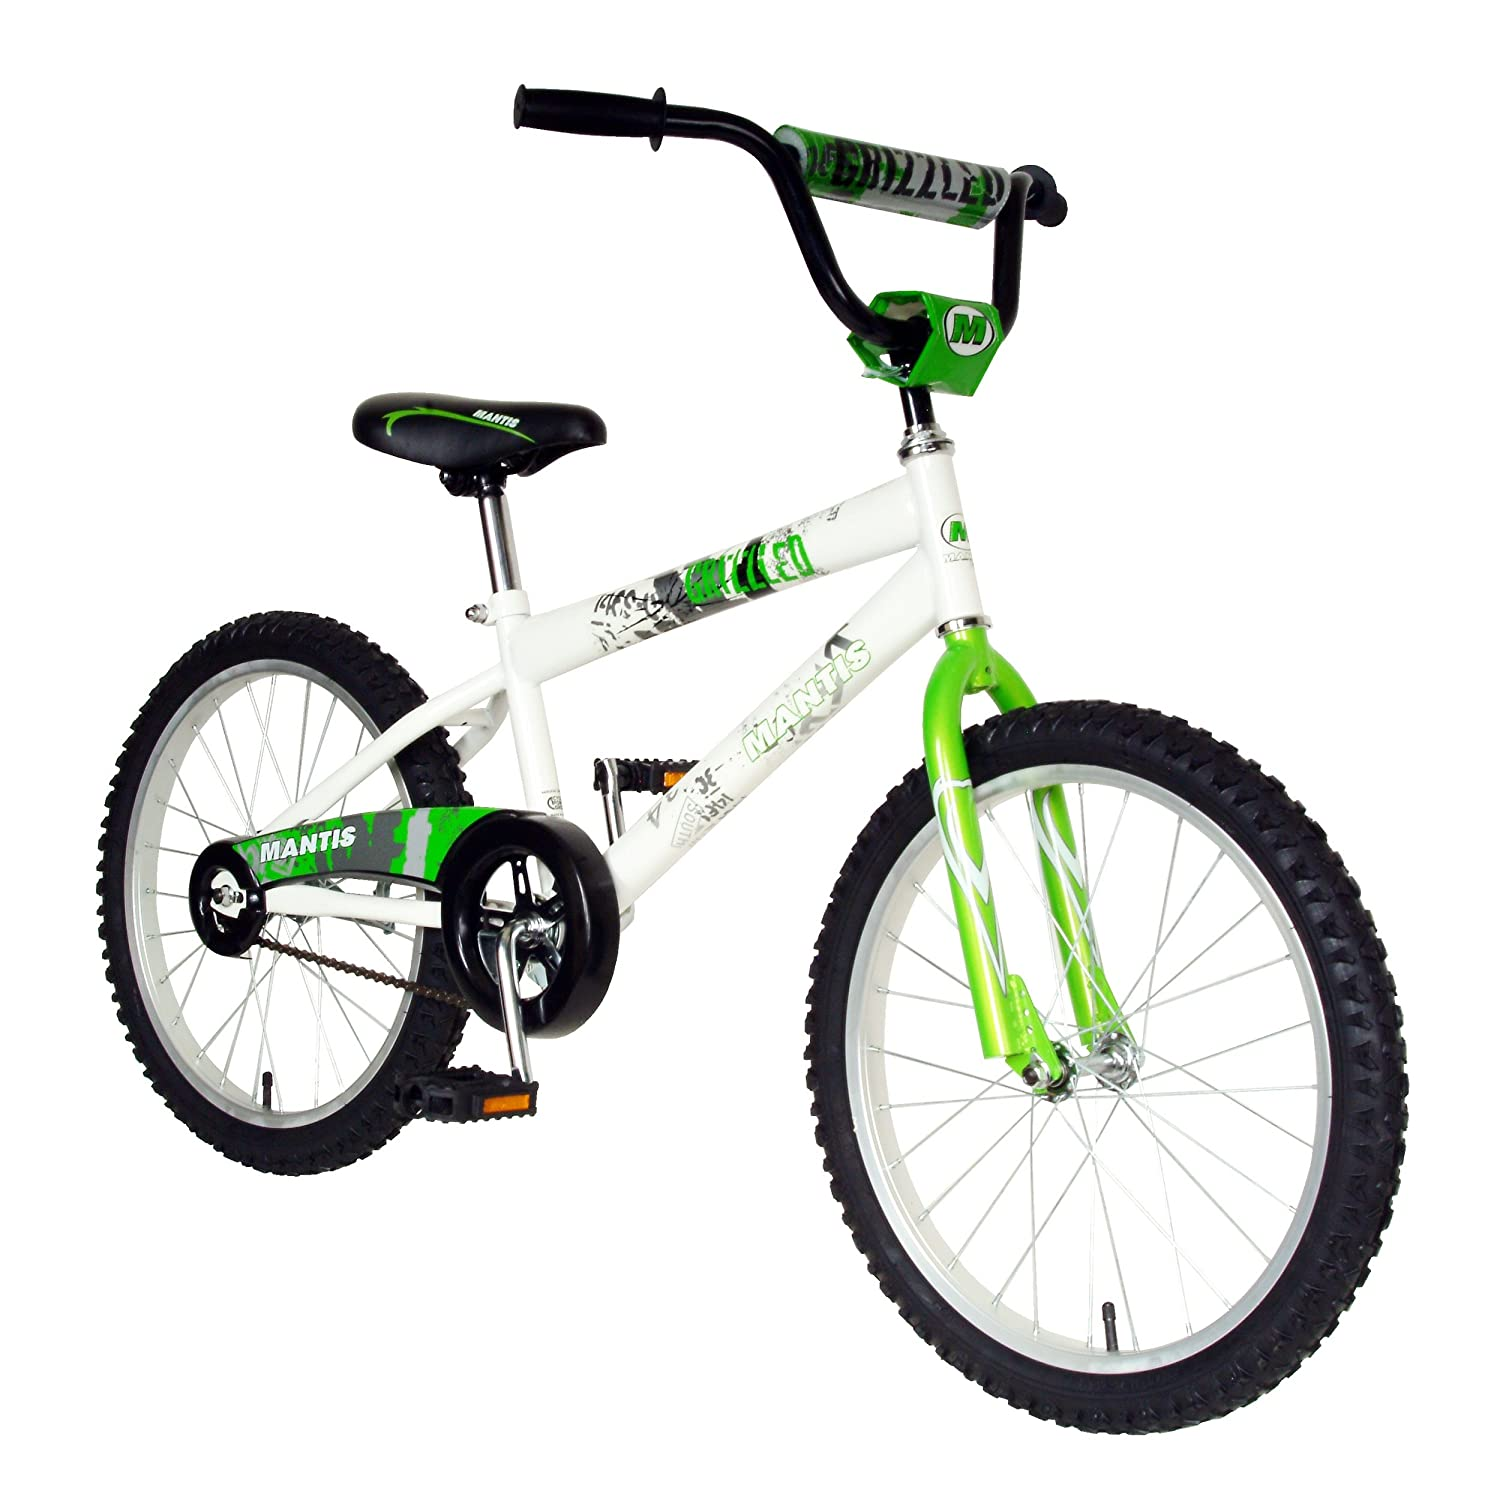 Mantis Grizzled Kid S Bike 20 Inch Wheels 12 Inch